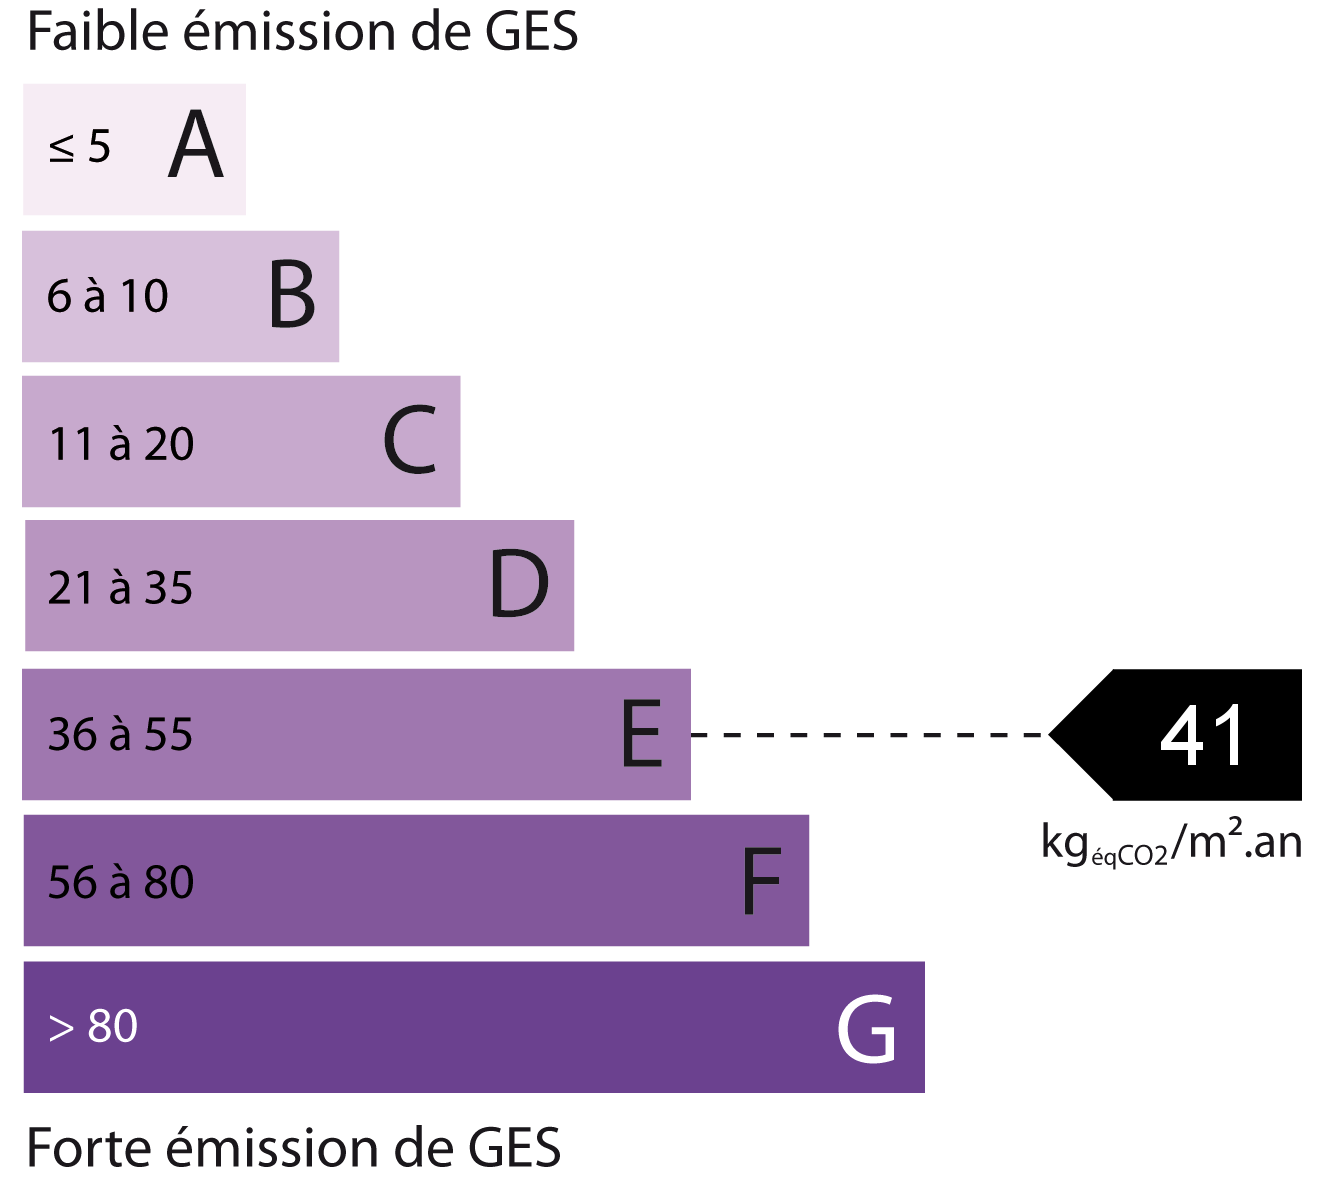 Energy - Emissions estimate